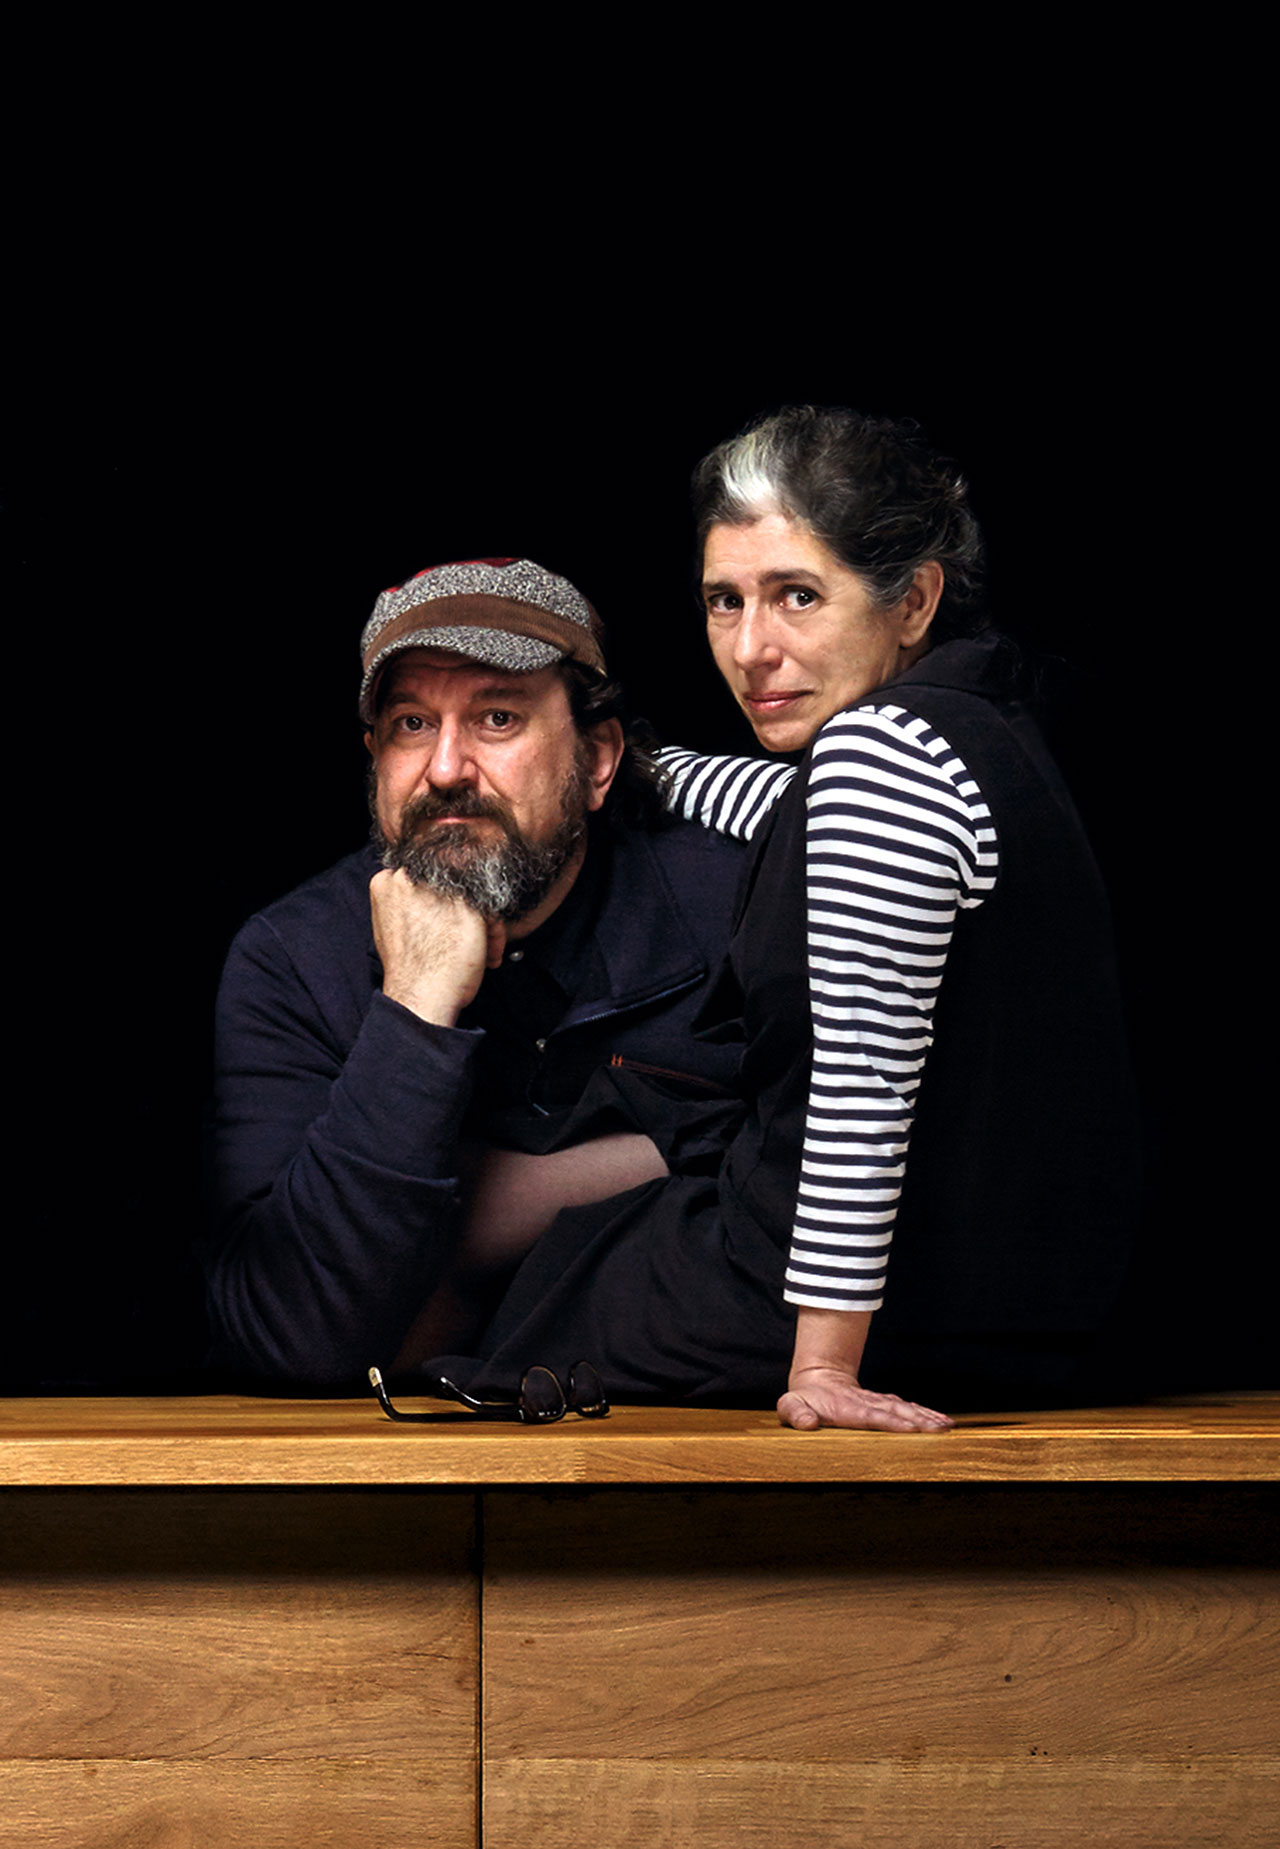 Picture of Marivi Calvo and Sandro Tothill, founders and soul of Lzf Lamps. Photo by Santiago Relanzón.